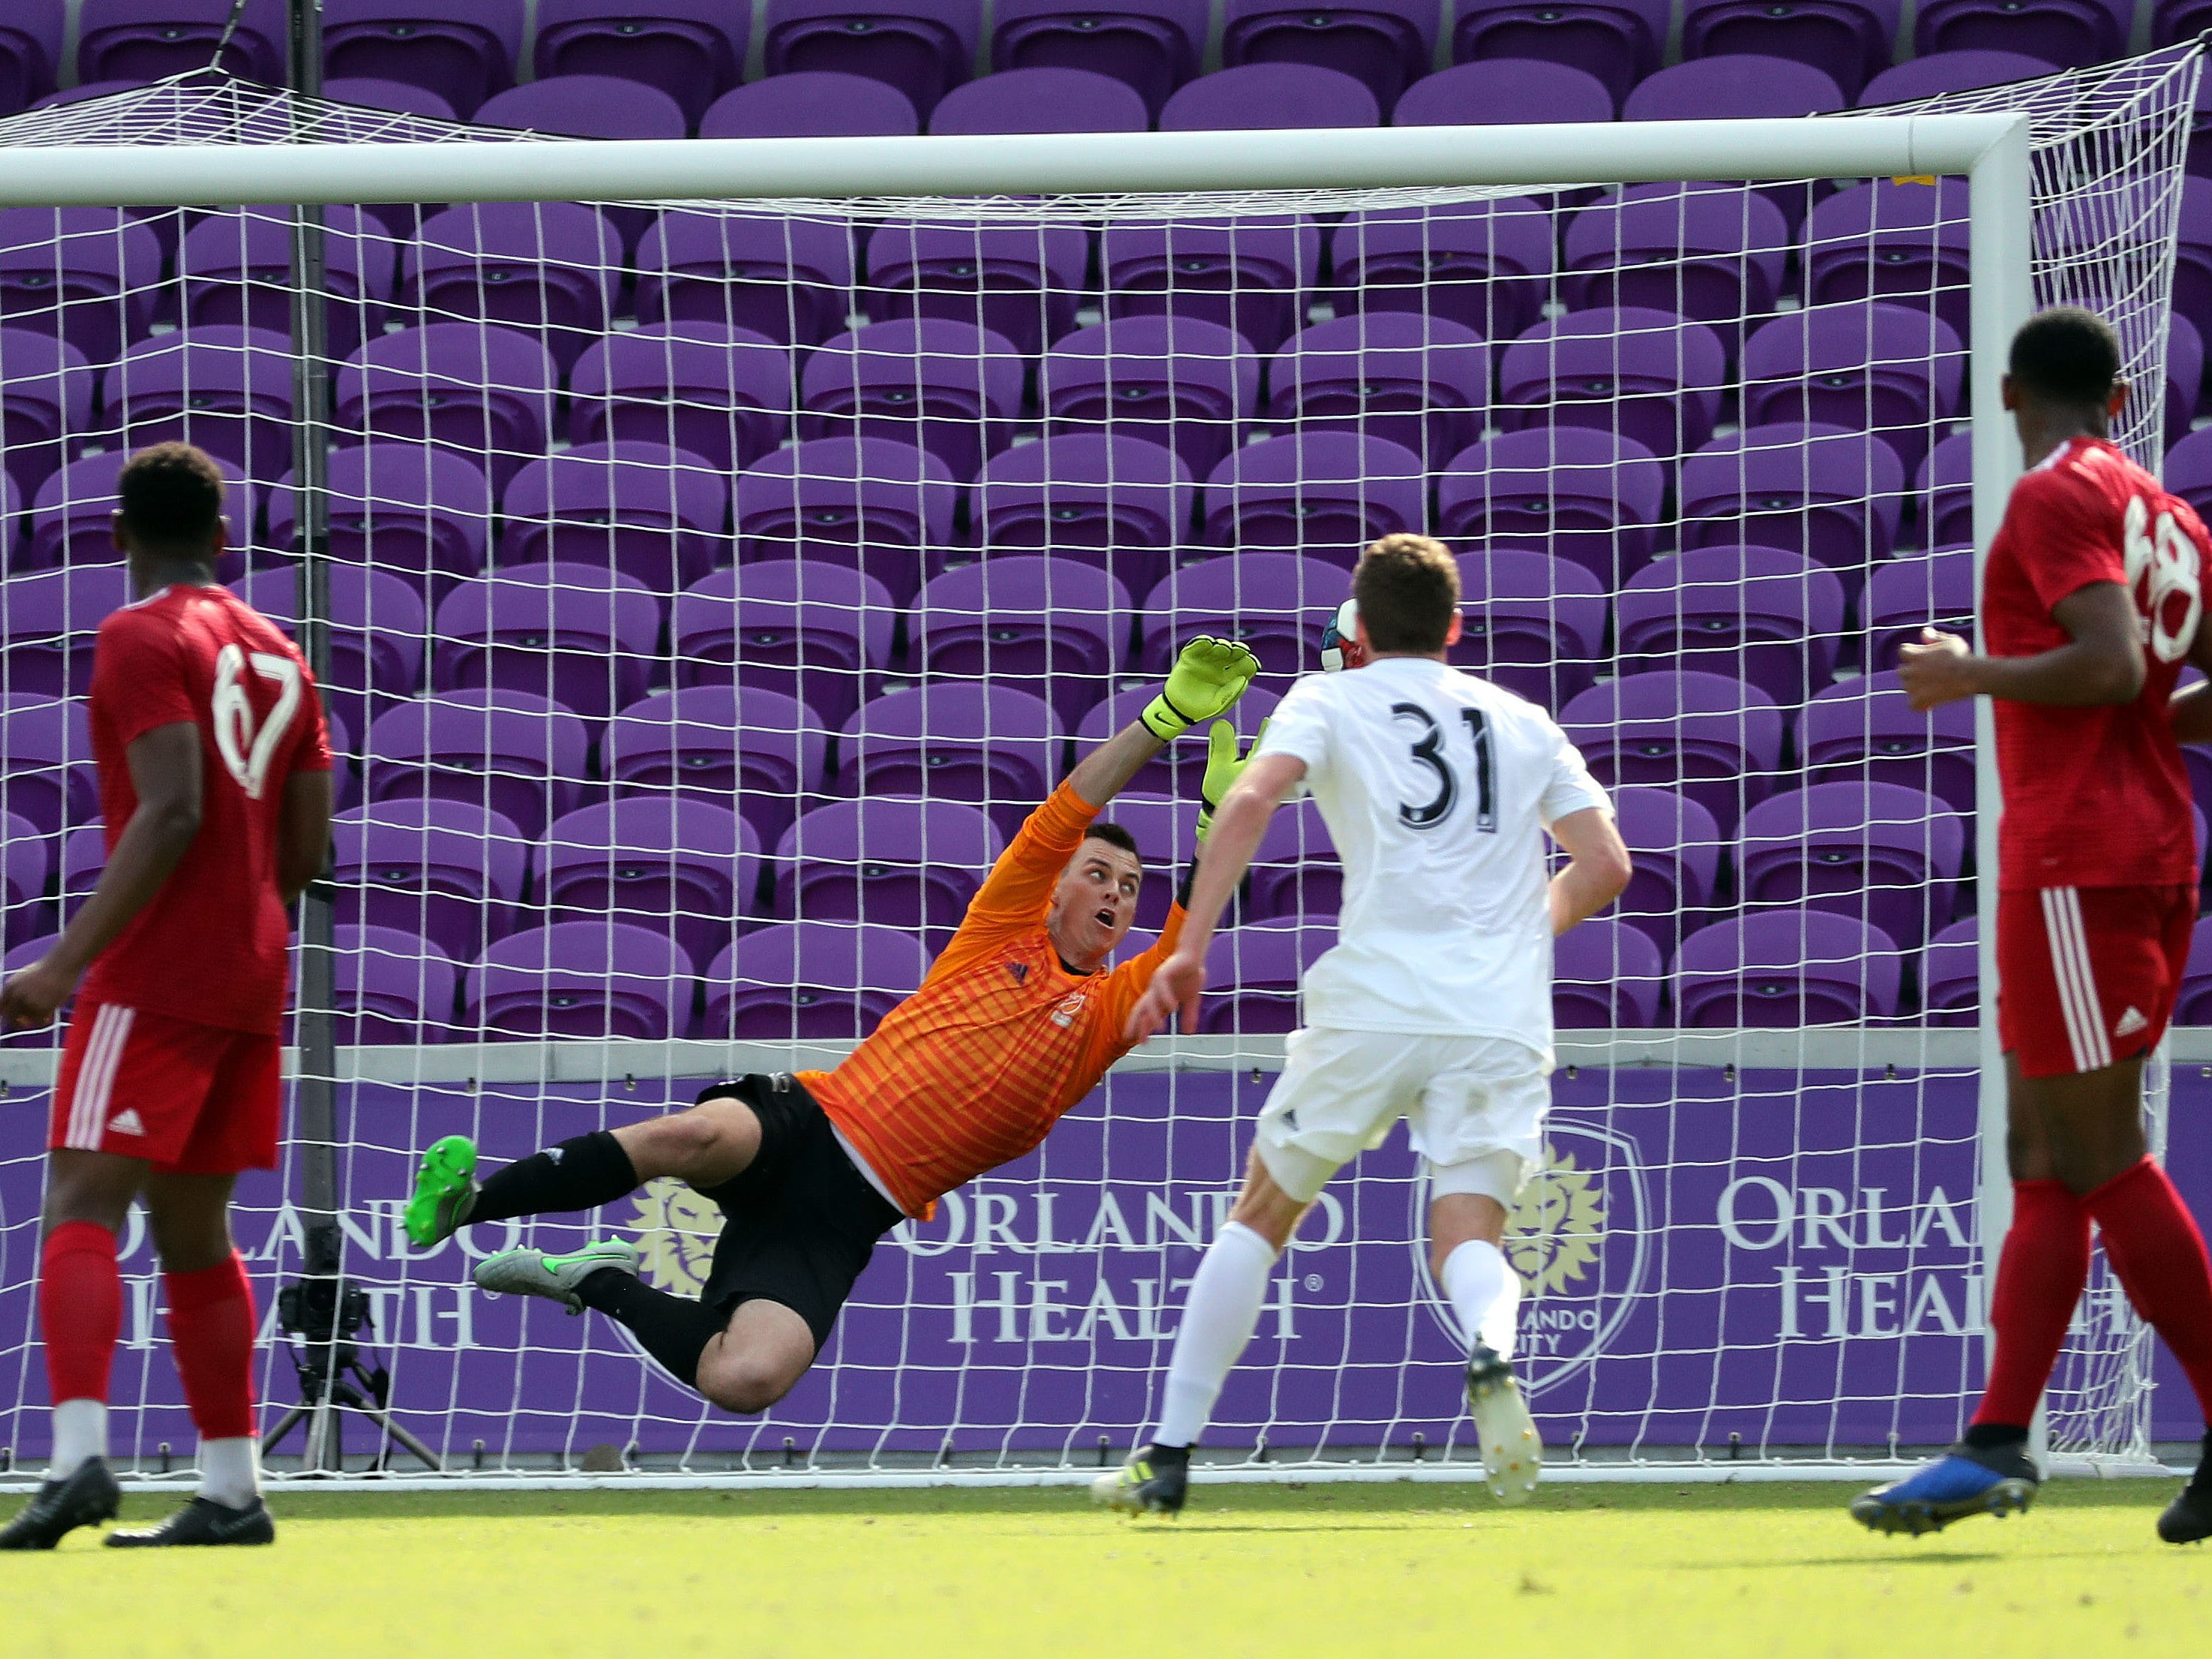 Team Predator goalkeeper Jimmy Hague (11) makes a save during the first half at Orlando City SC Stadium.